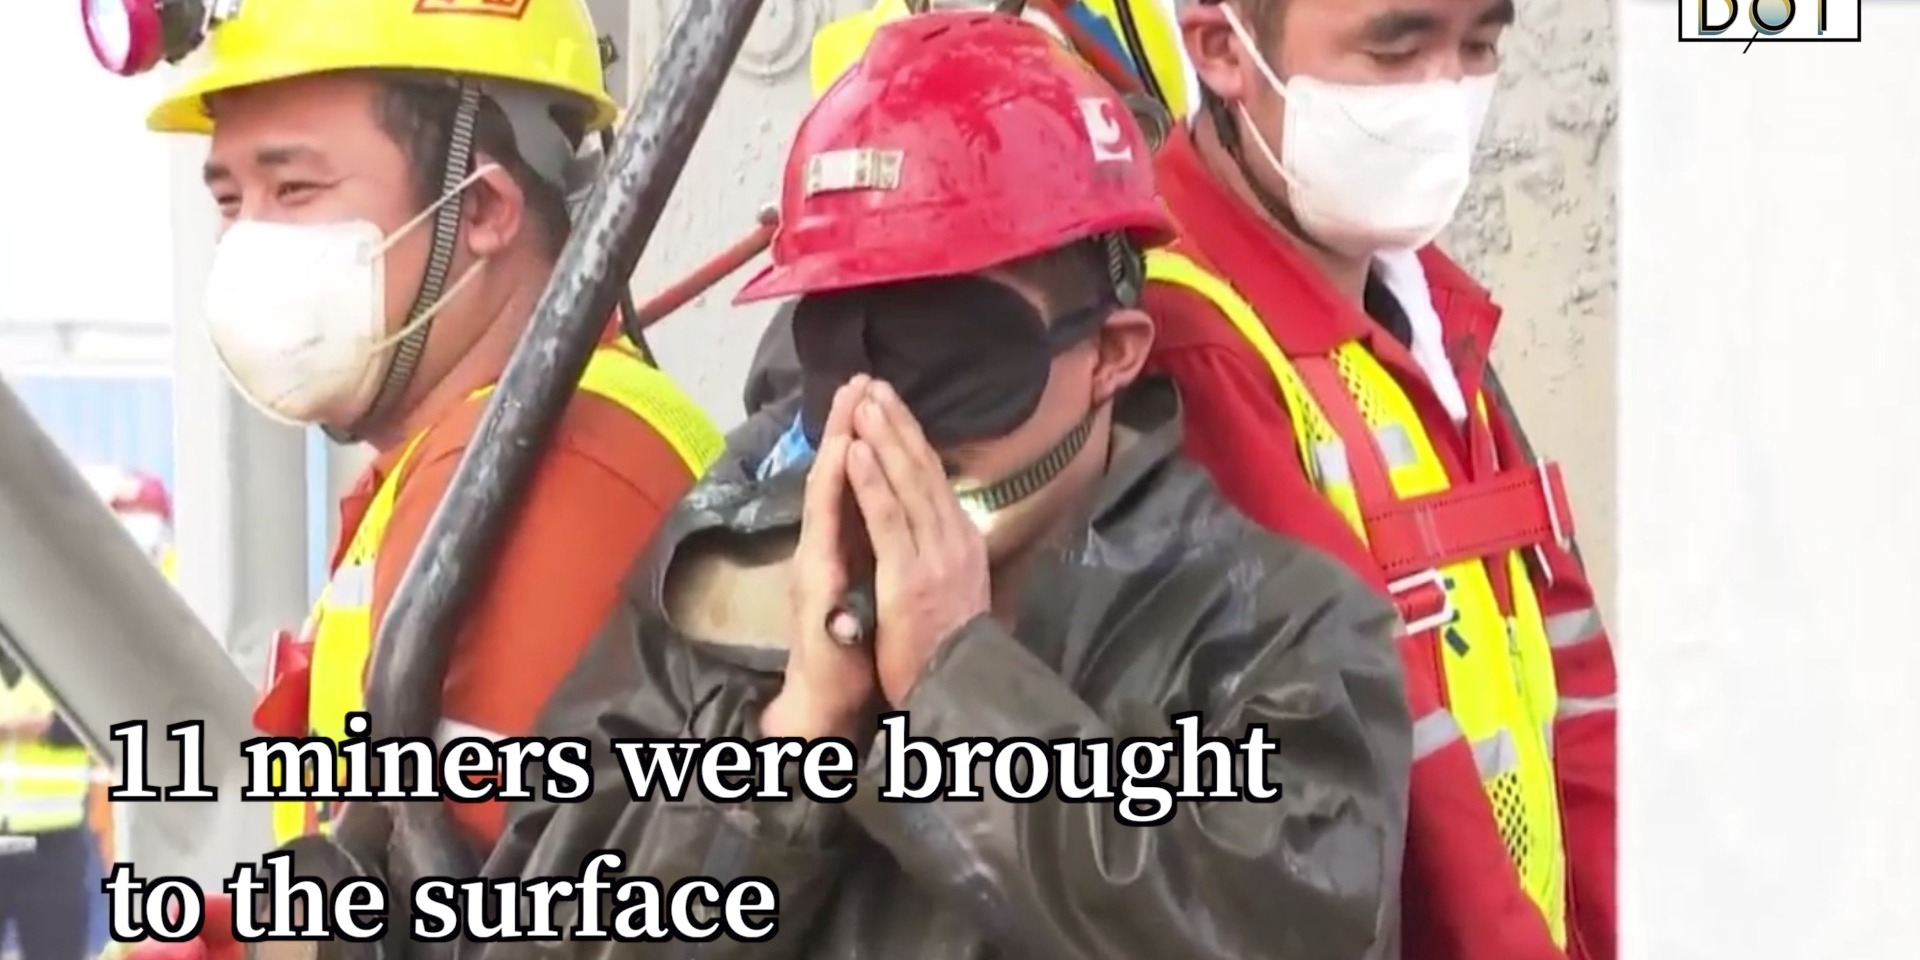 Watch This | China mine rescue: 11 miners brought to surface, 2 weeks after underground explosion